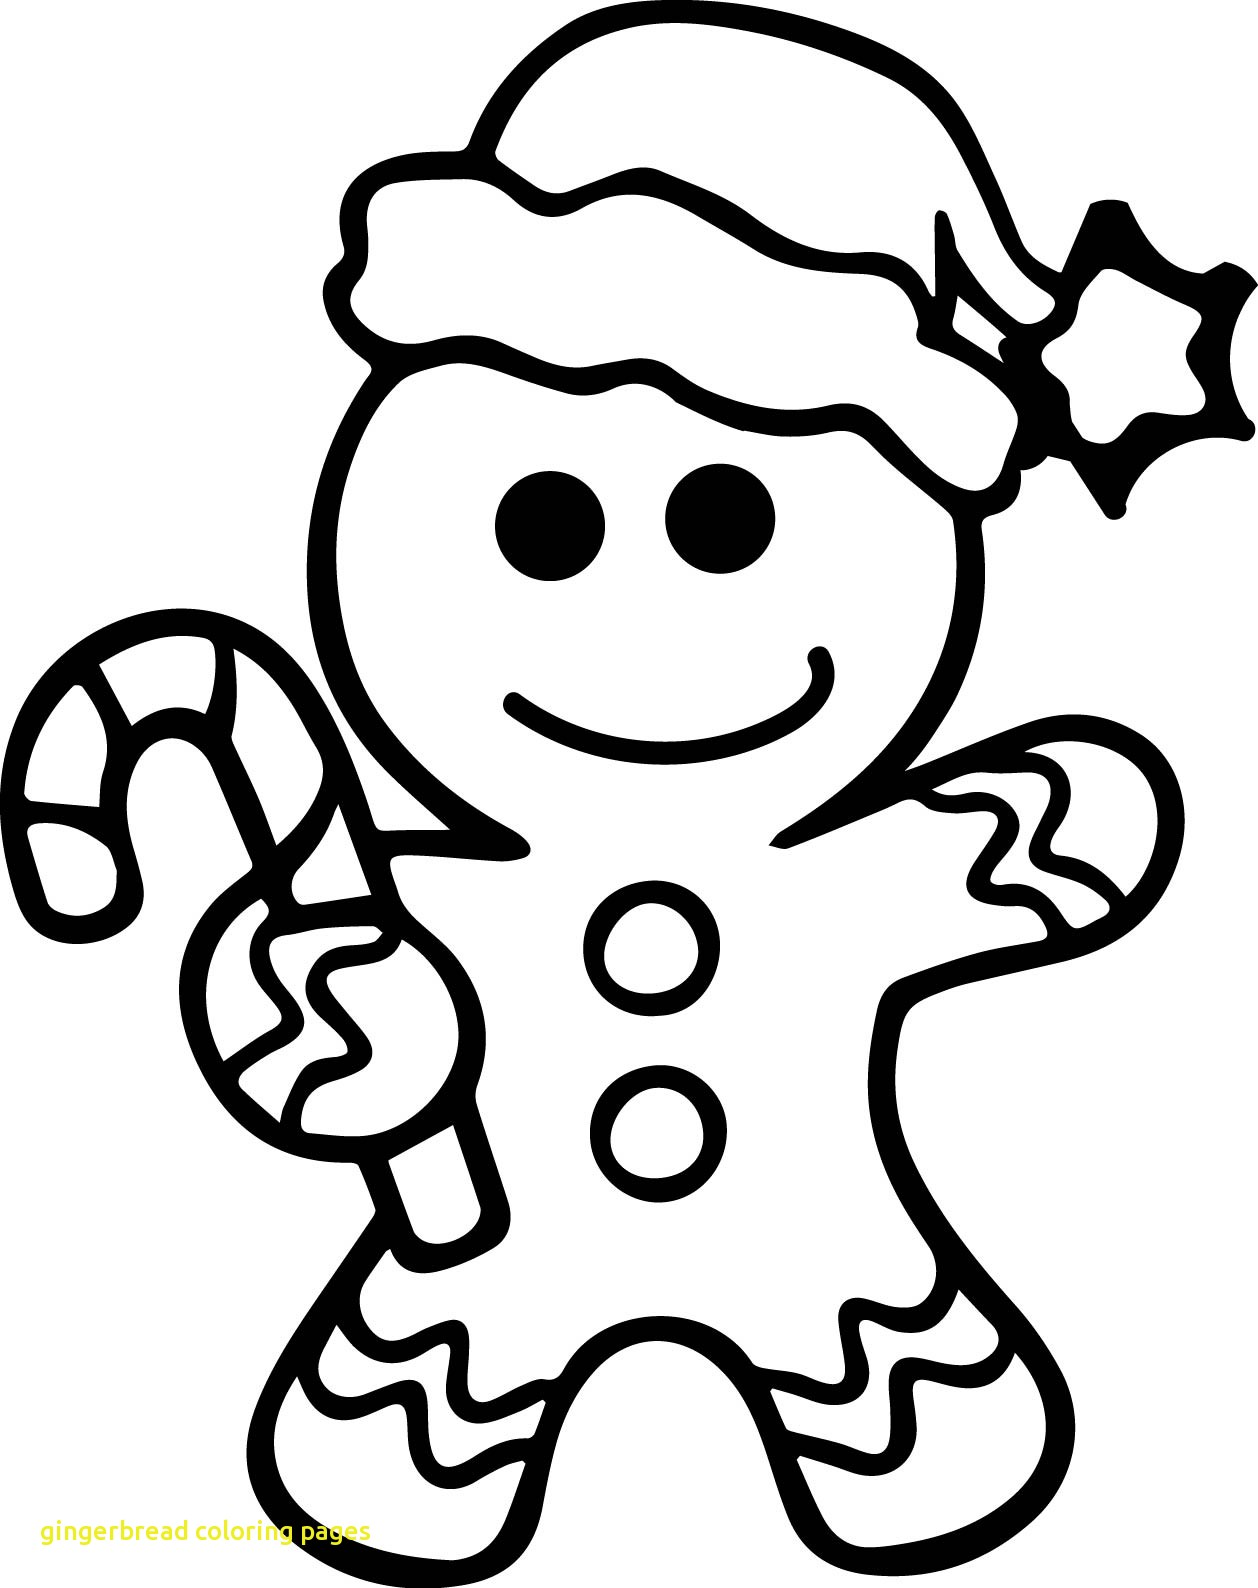 1258x1588 Gingerbread Coloring Pages With Gingerbread Man Coloring Page